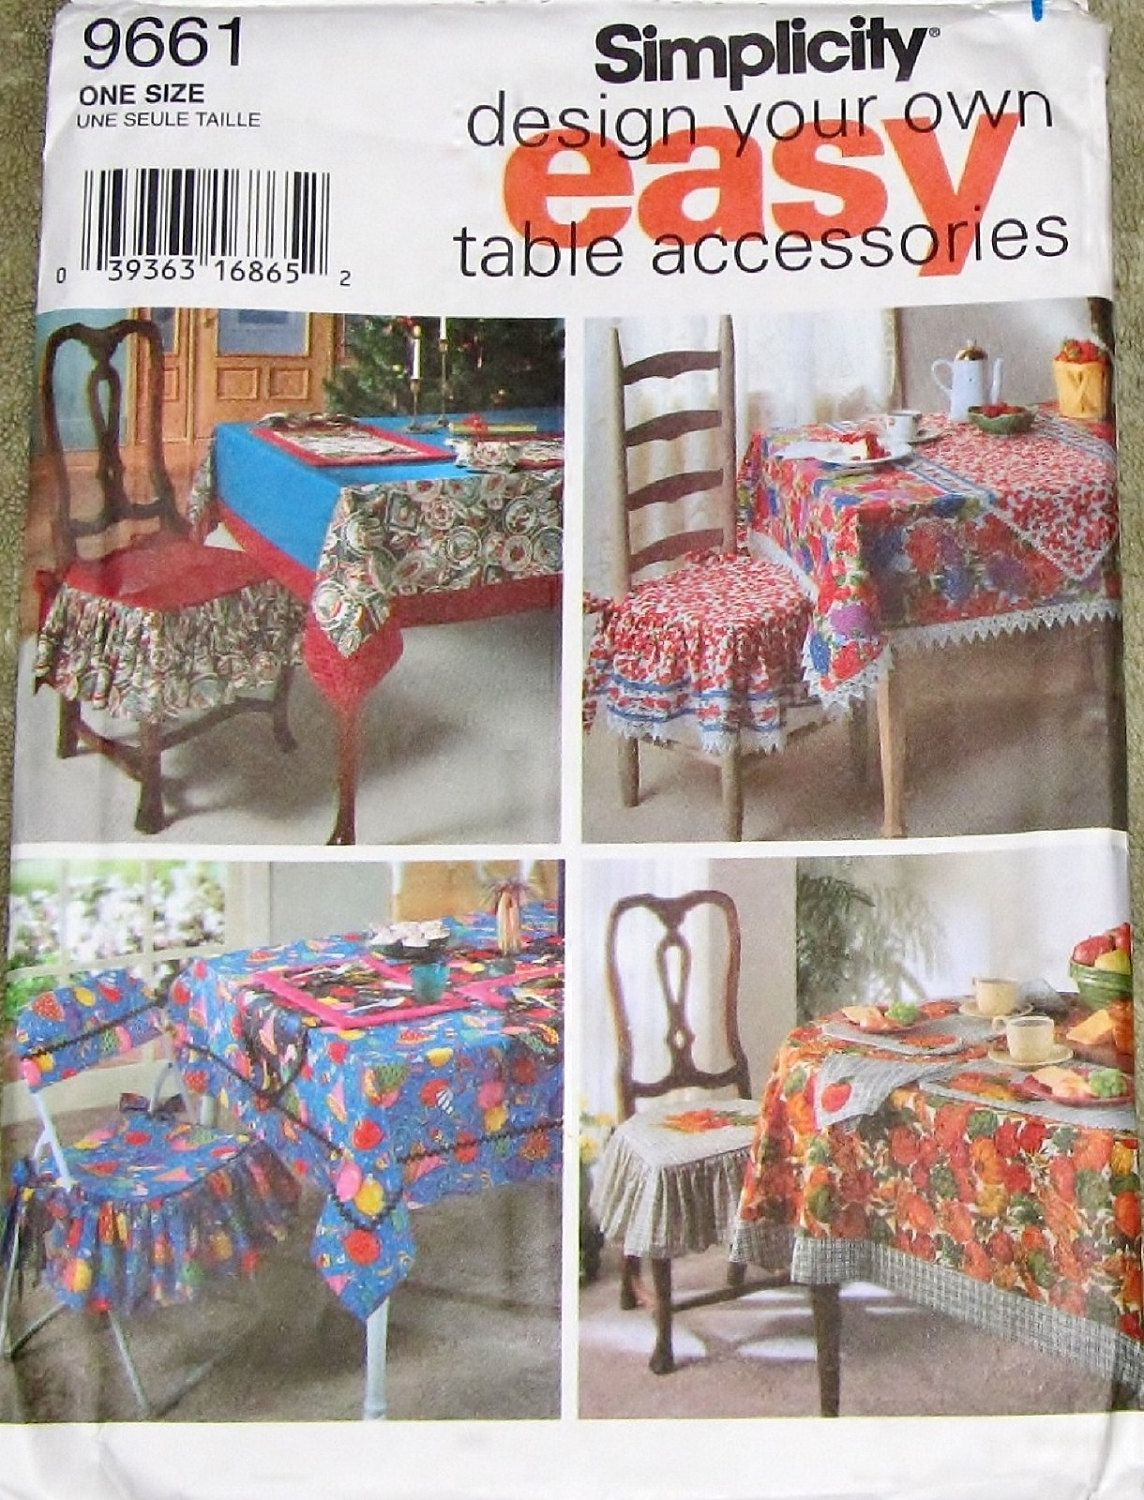 simplicity 9661 design your own table accessories cloth runner mat